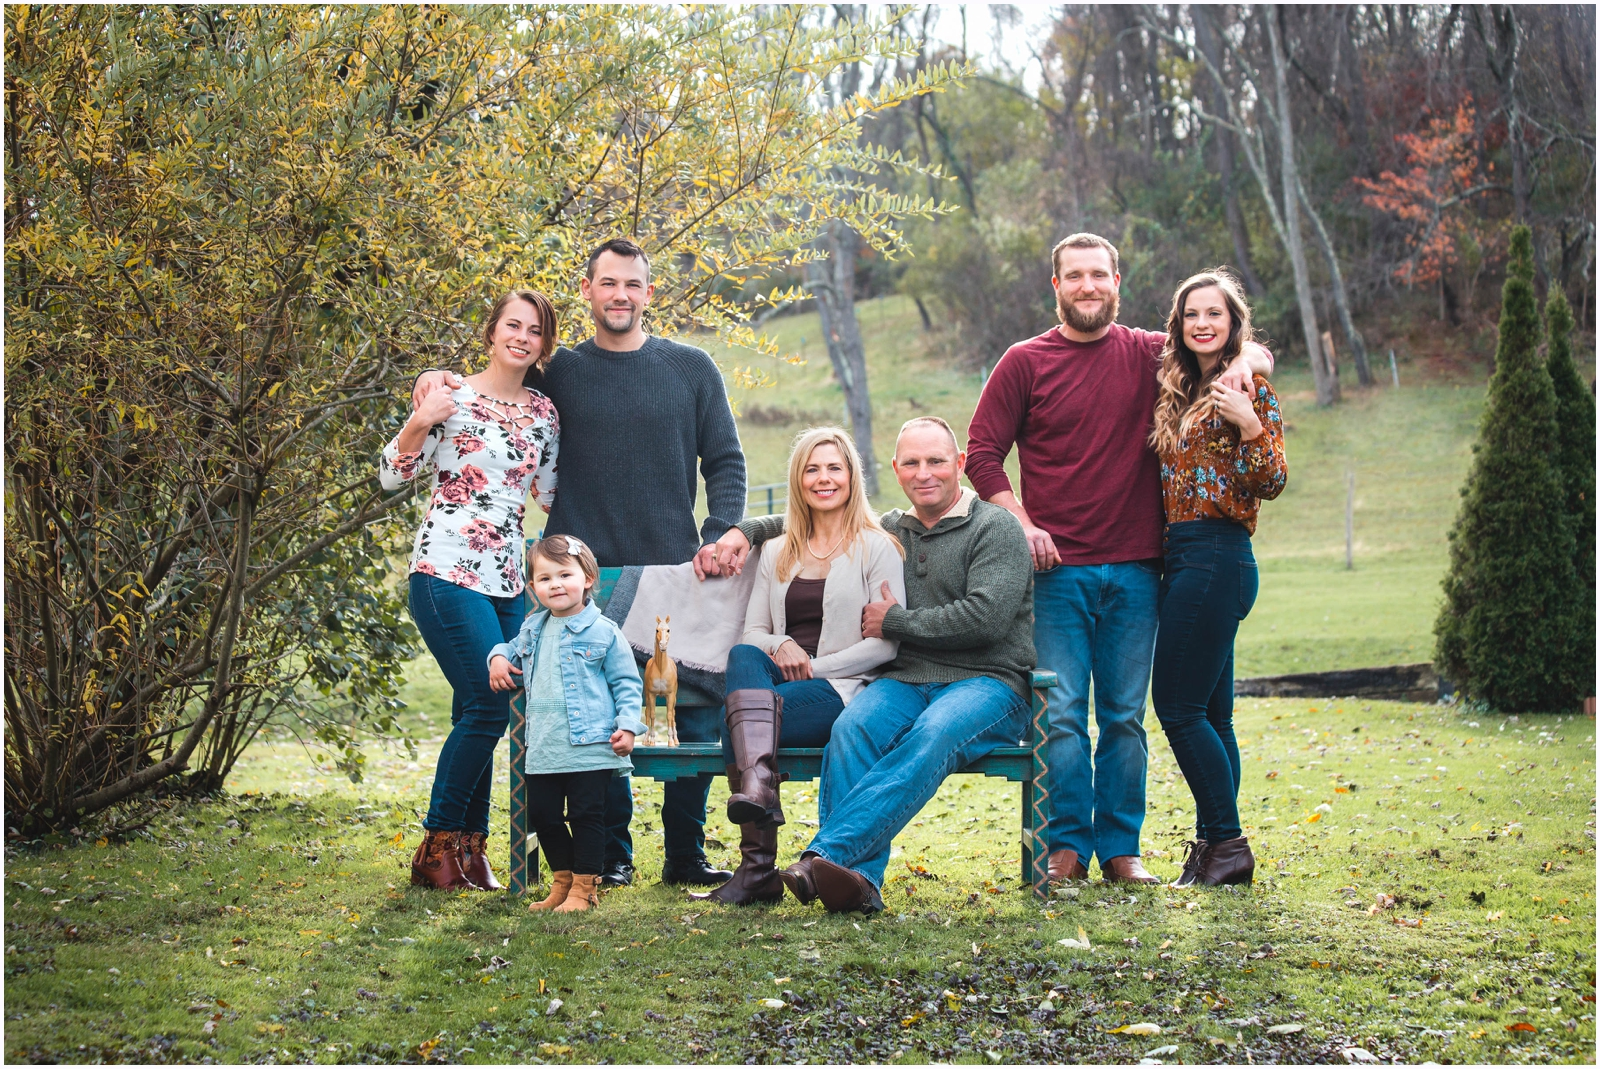 family_portrait_youngwood_pa_photographer_greensburg_mount_pleasant_latrobe.jpg